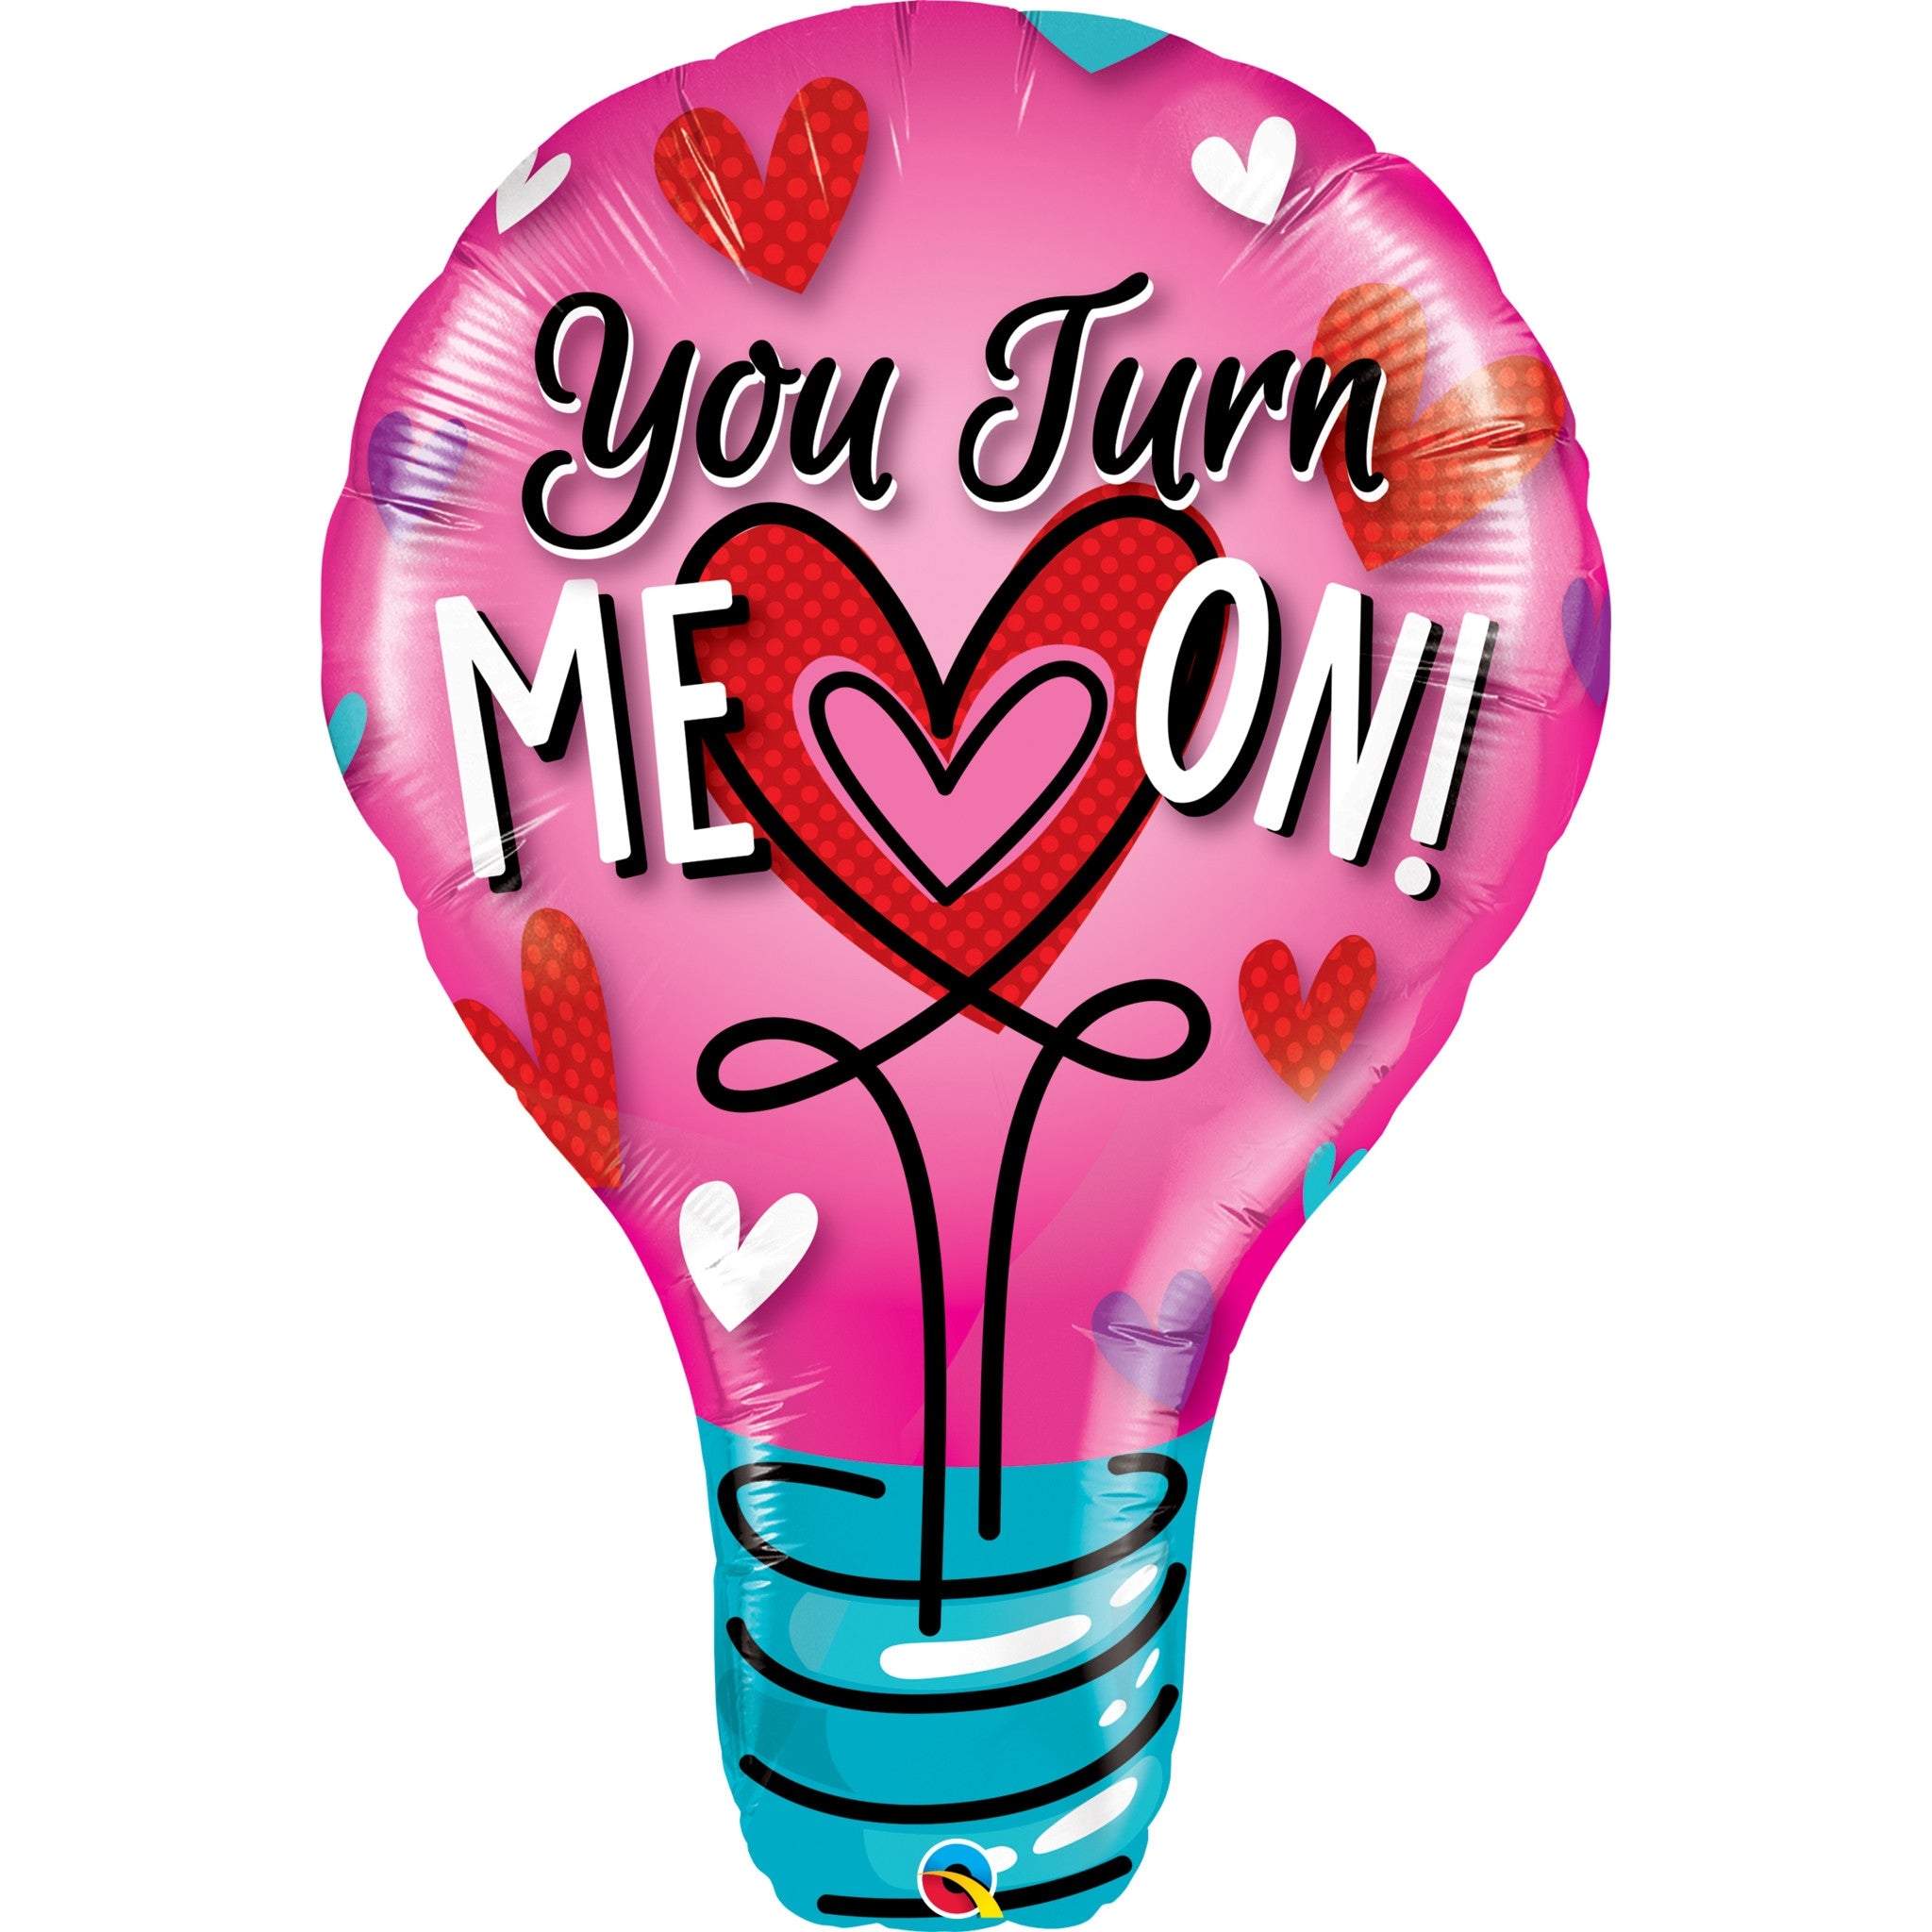 "YOU TURN ME ON 40"" FOIL BALLOON from Flingers Party World Bristol Harbourside who offer a huge range of fancy dress costumes and partyware items"